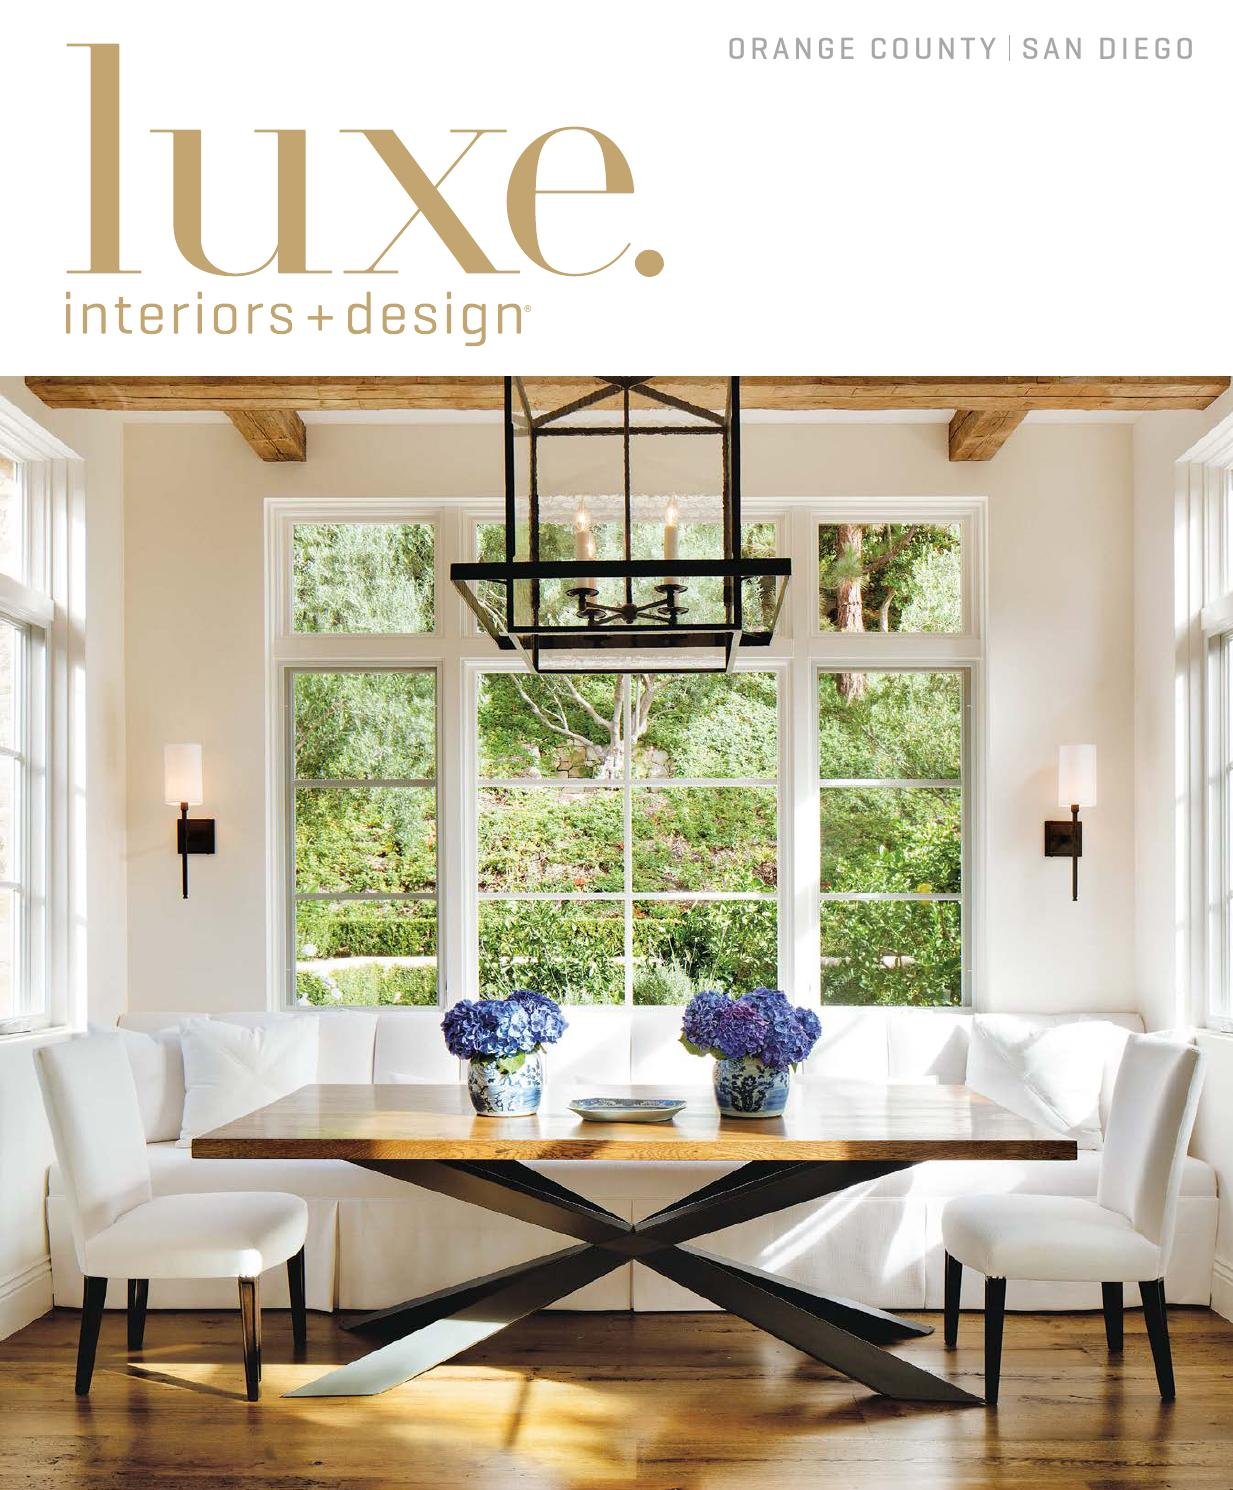 Luxe Magazine November 2015 Orange County San Diego By Sandow Media Llc Issuu